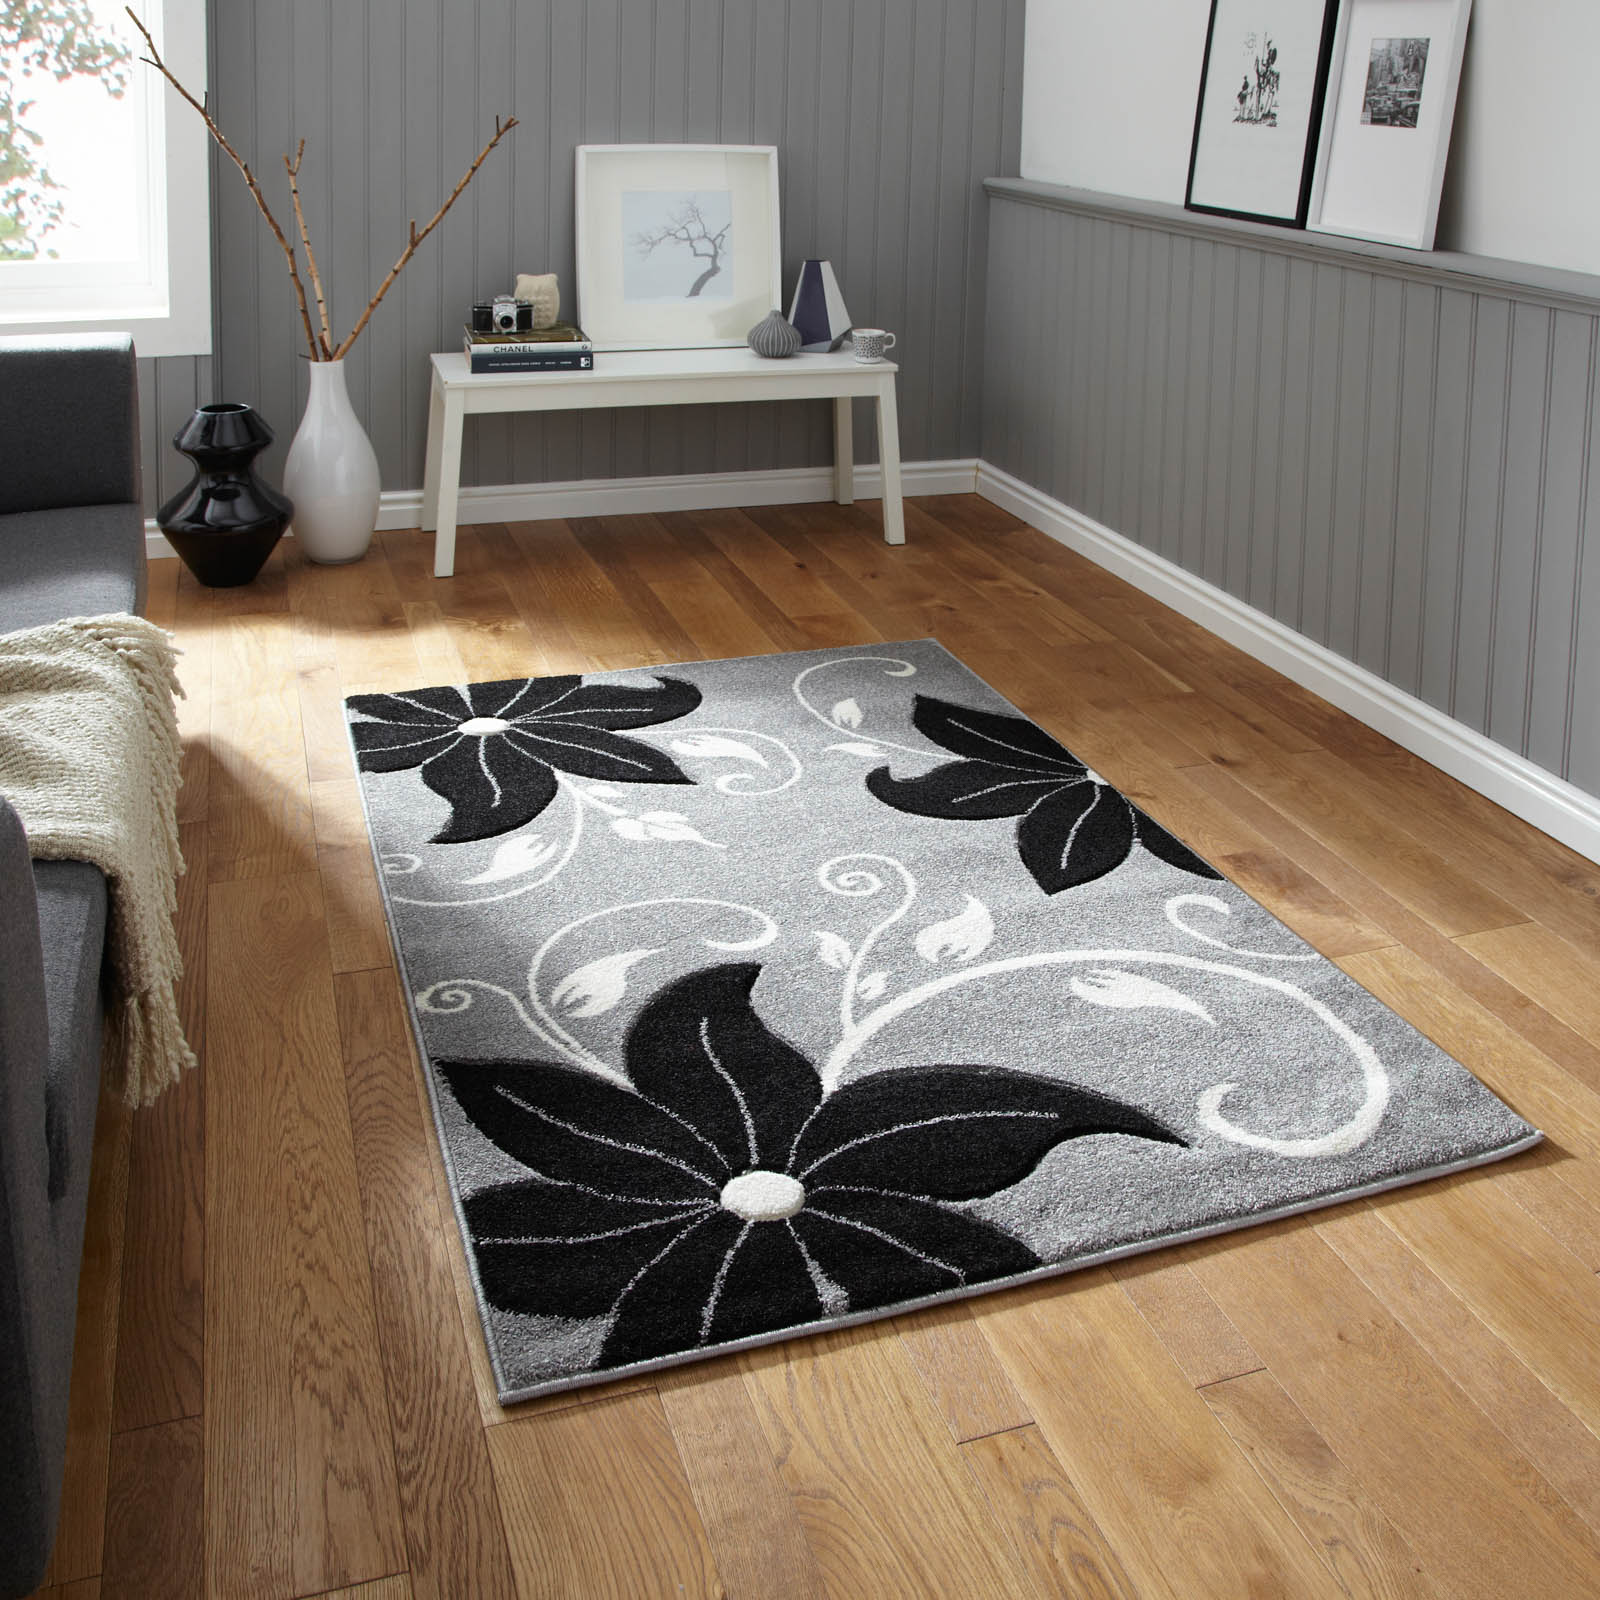 Verona OC15 Hand Carved Rugs in Grey Black